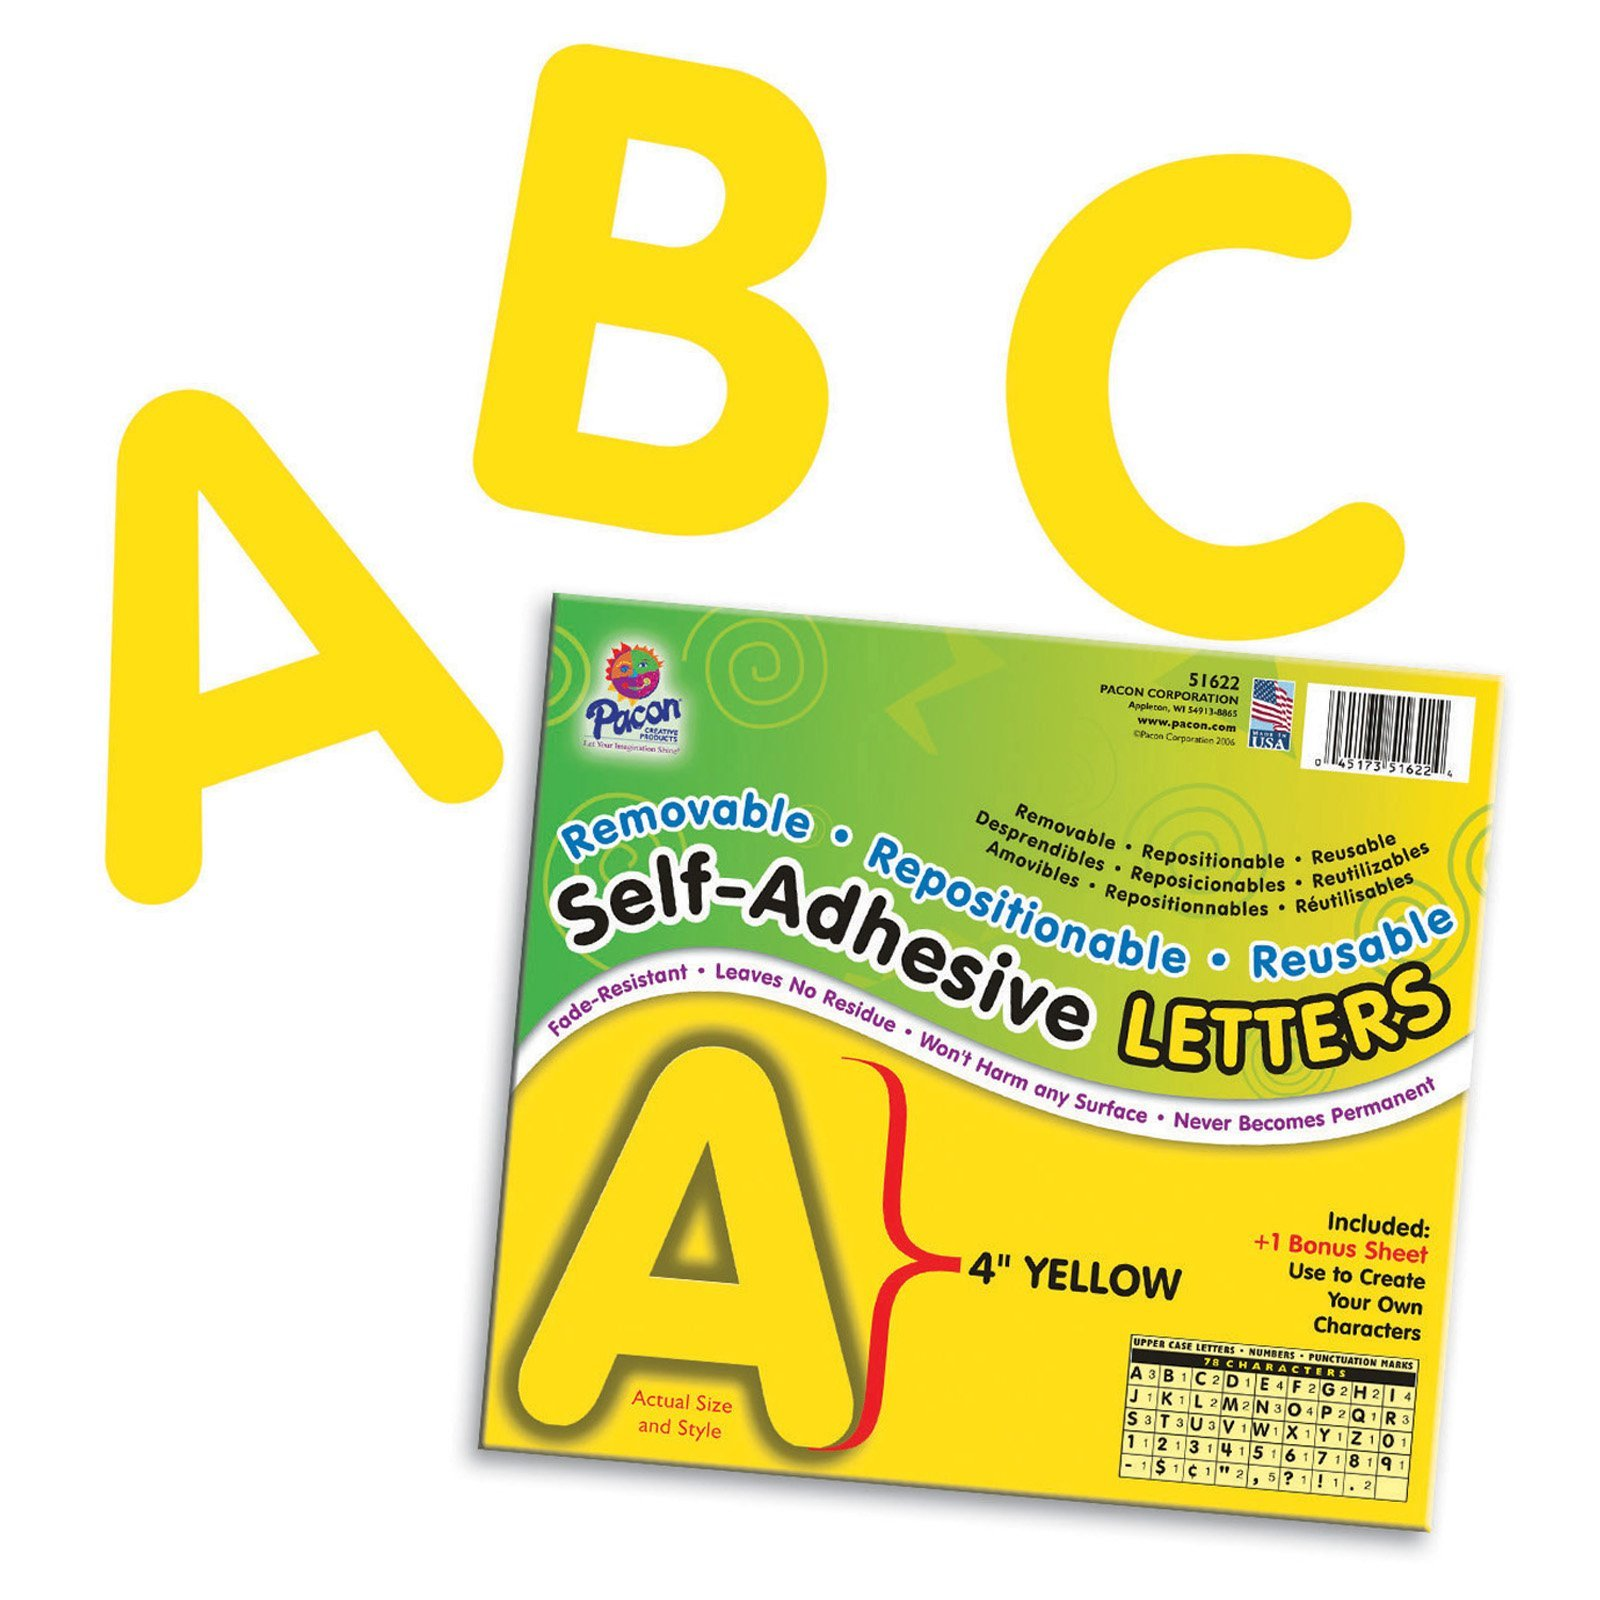 Pacon PAC51622BN Self-Adhesive Letters, Yellow, Puffy Font, 4'', 78 Characters Per Pack, 2 Packs by Pacon